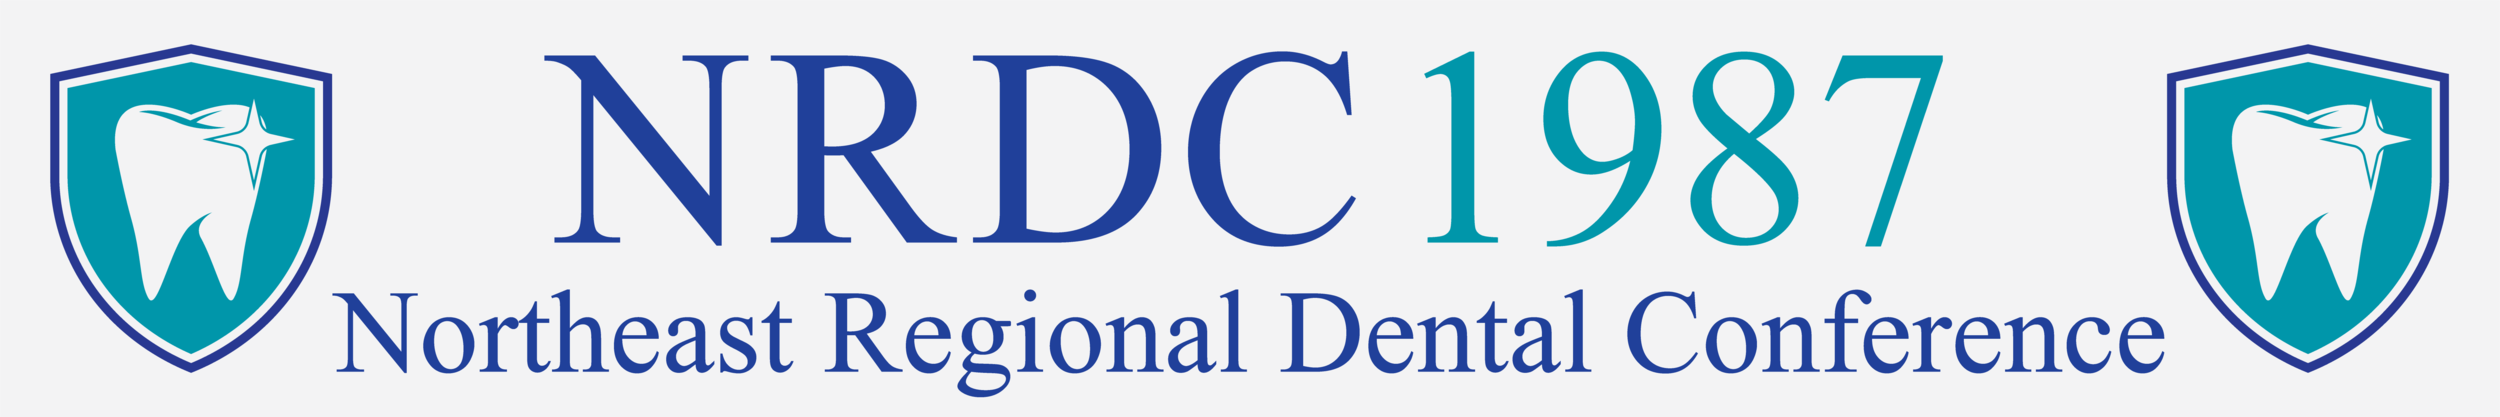 Dental_Conference_Banner.png